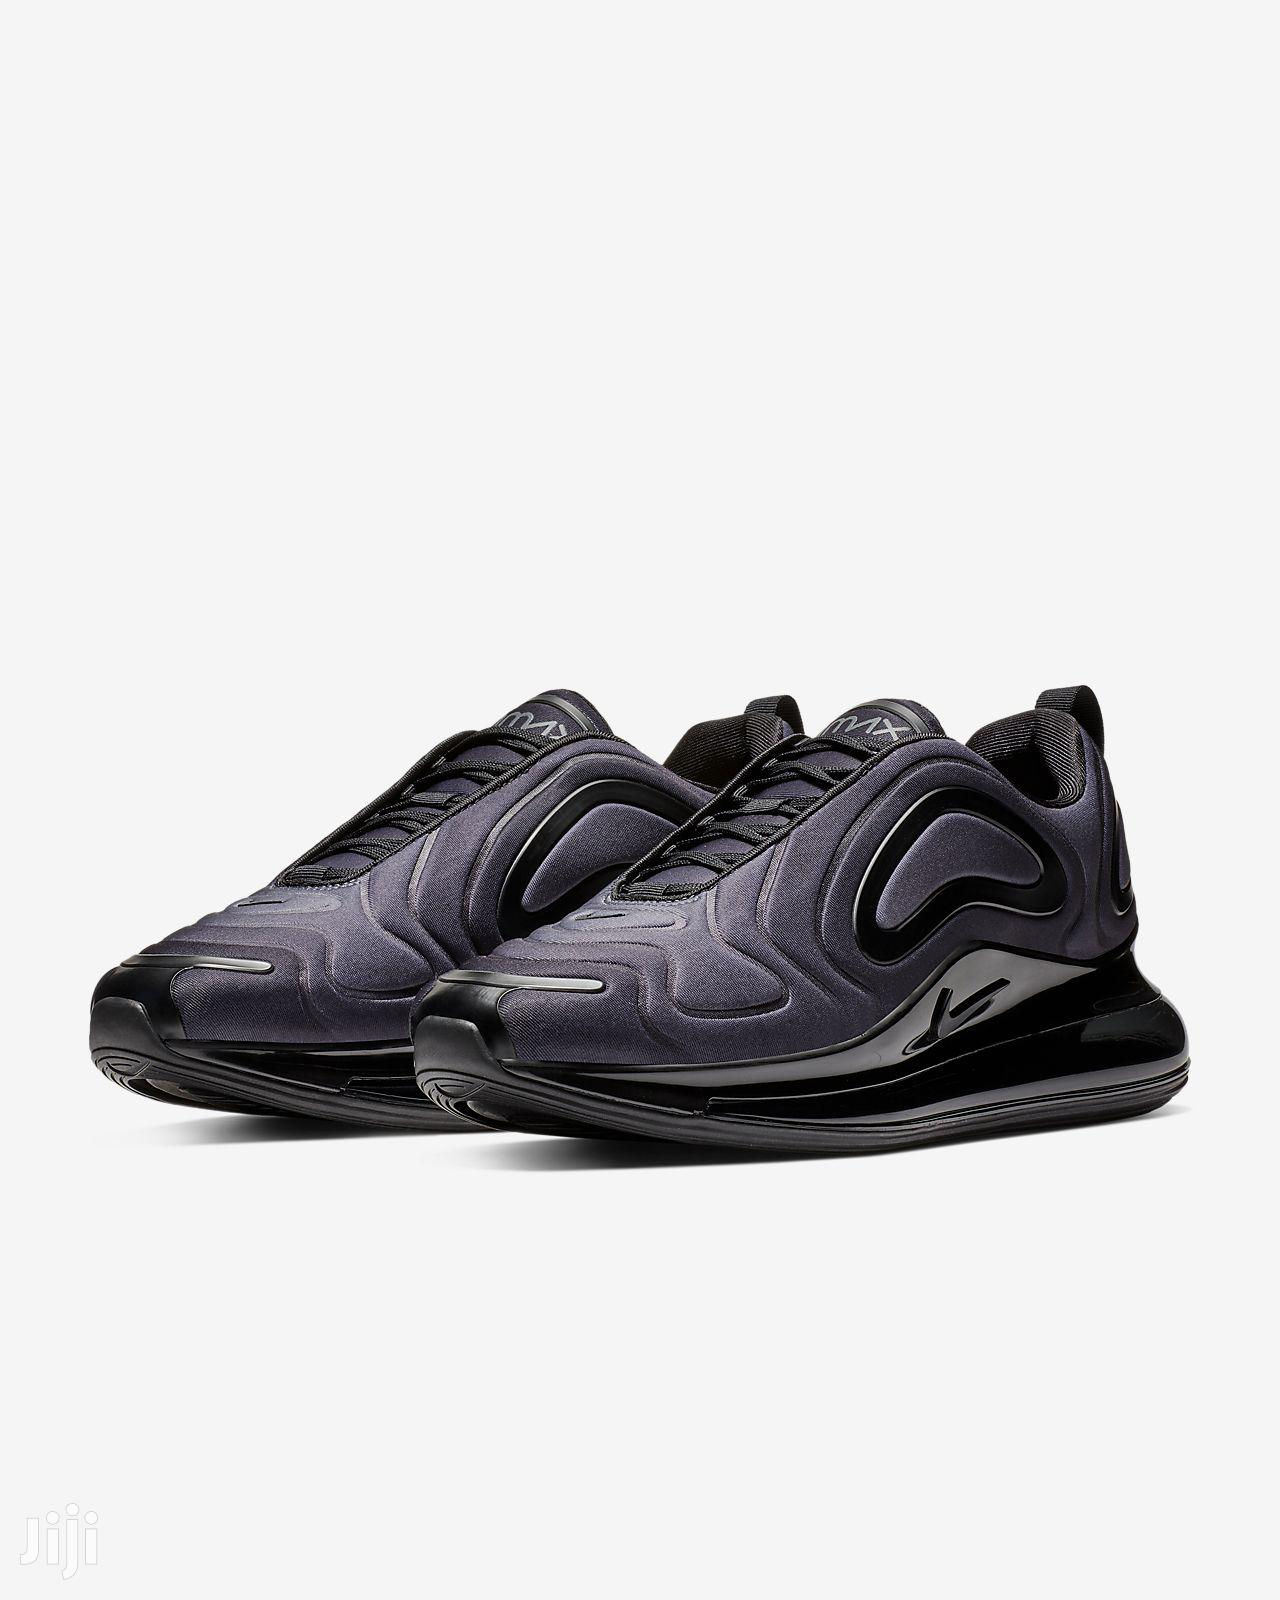 Nike 720 | Shoes for sale in East Legon, Greater Accra, Ghana